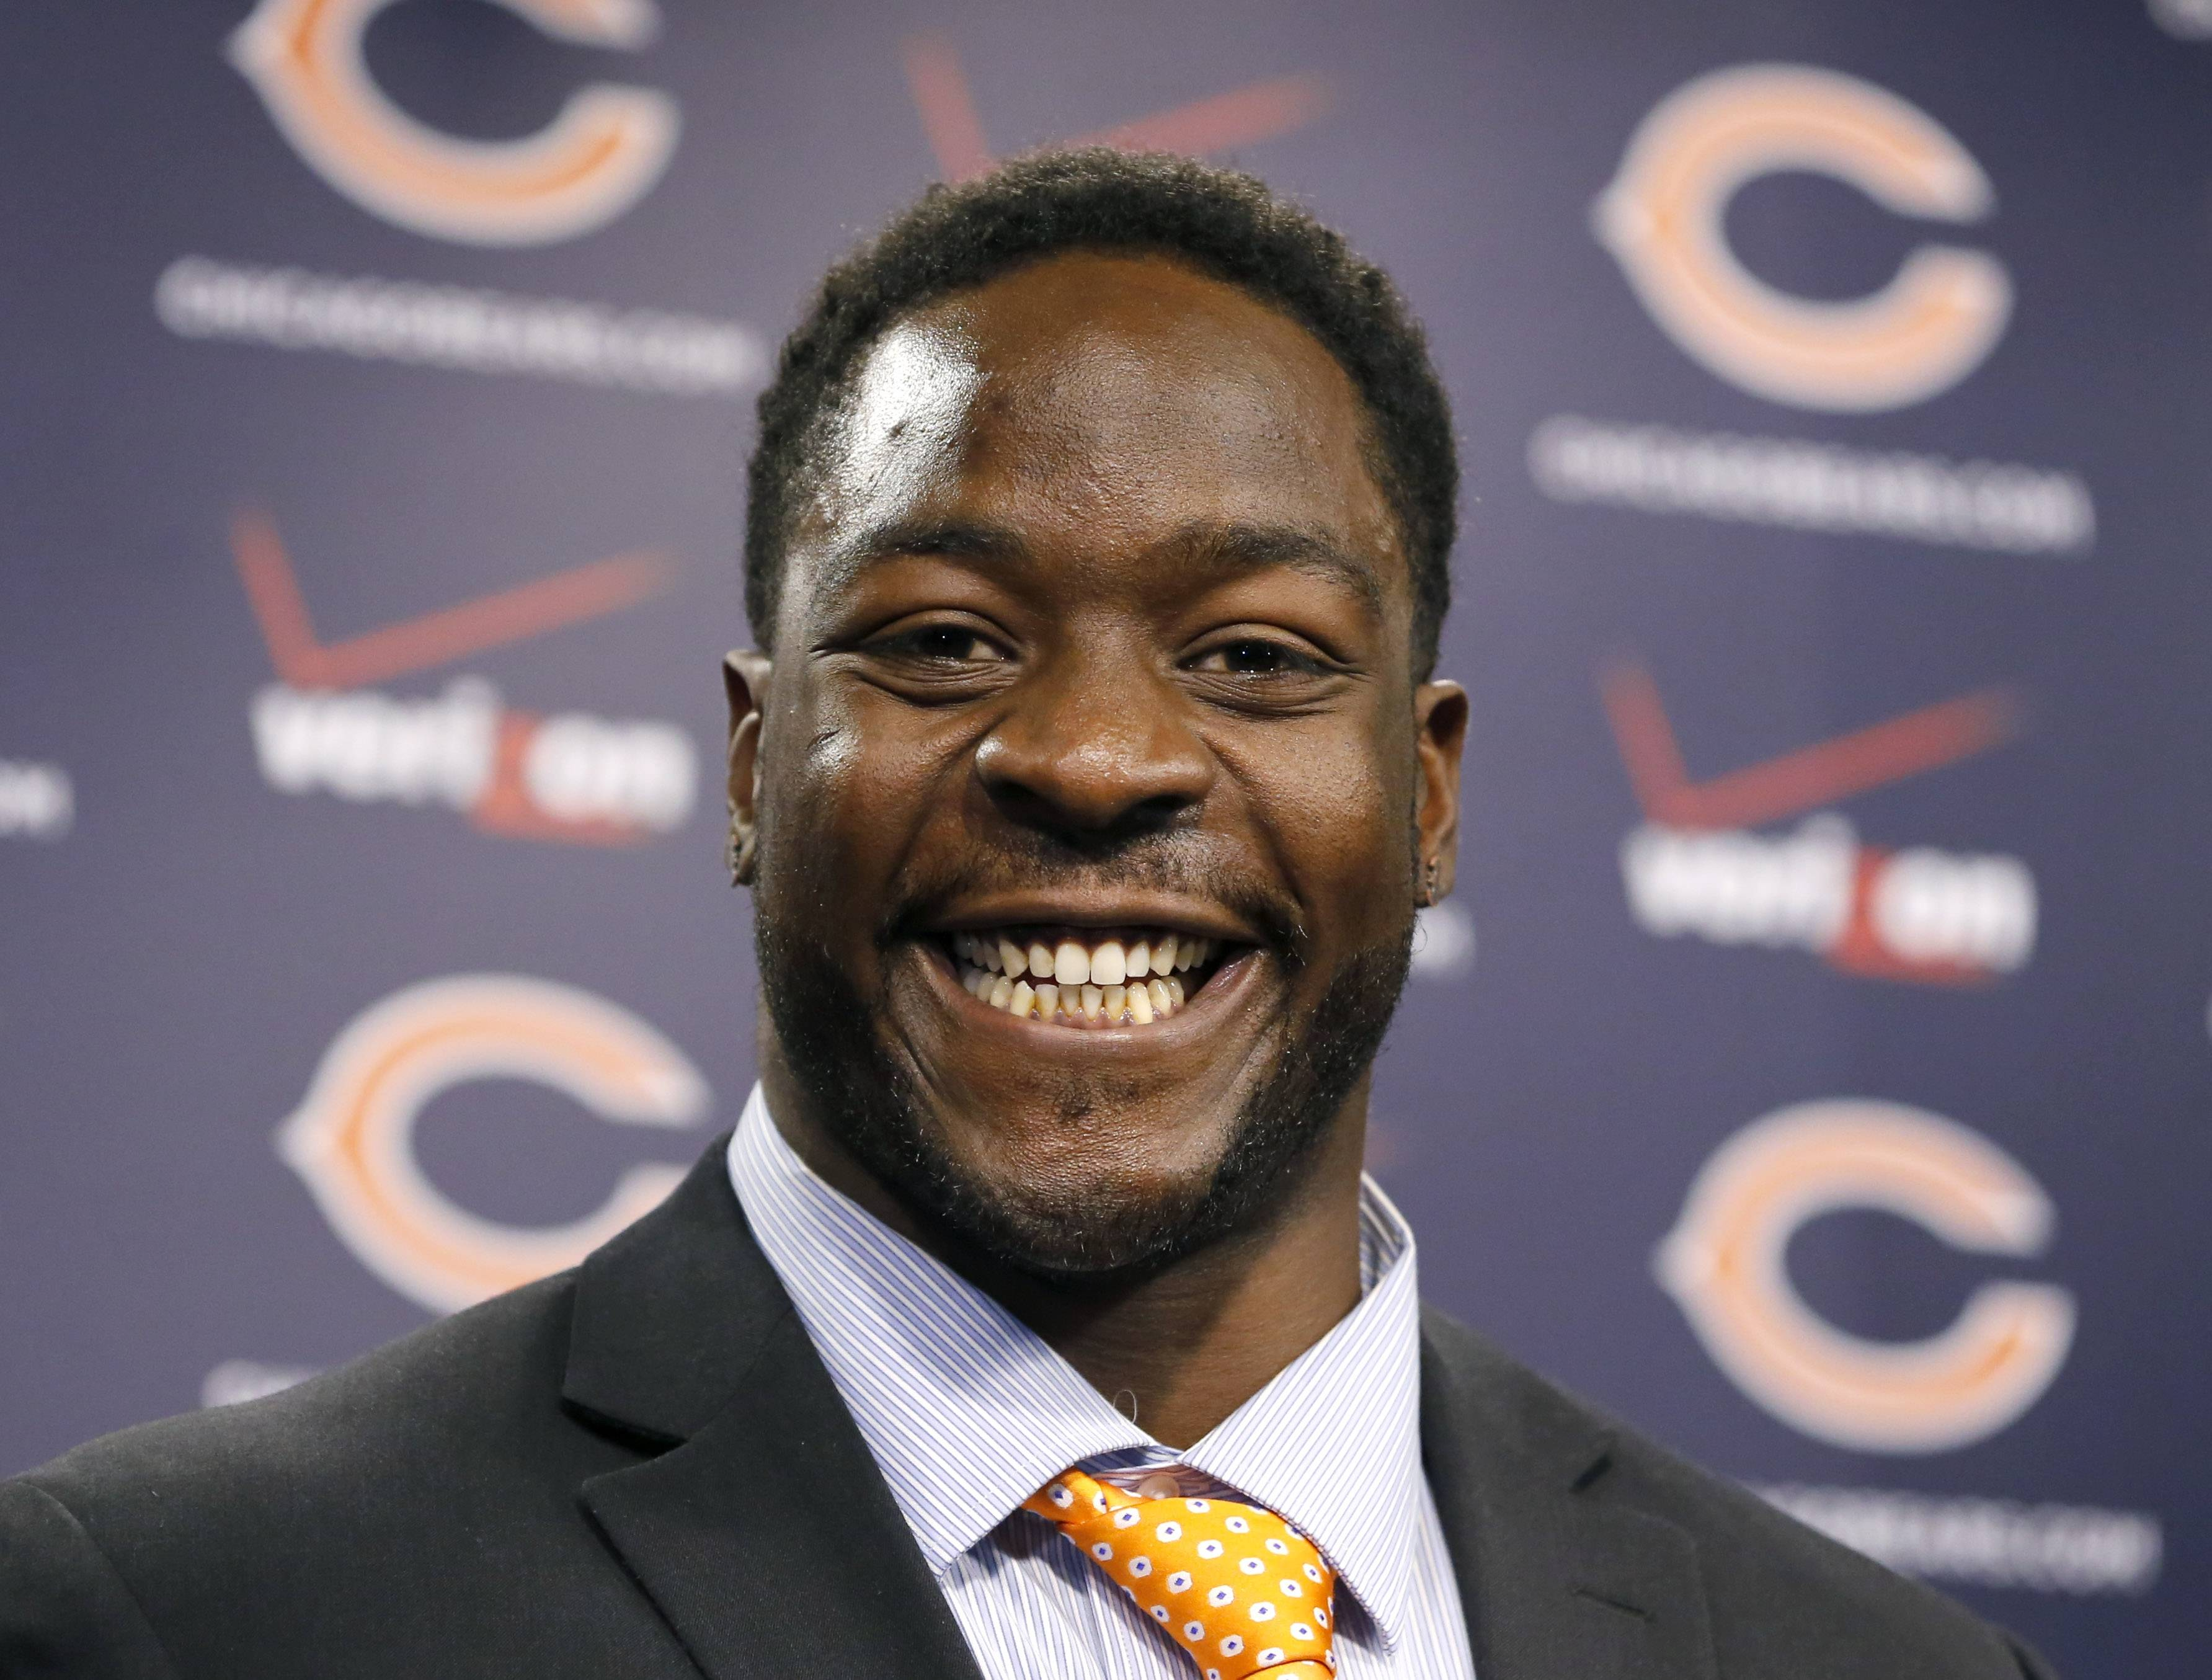 Bears defensive end Lamarr Houston smiles after being introduced as the newest member of the team during a news conference Wednesday, March 12, 2014, in Lake Forest, ill.